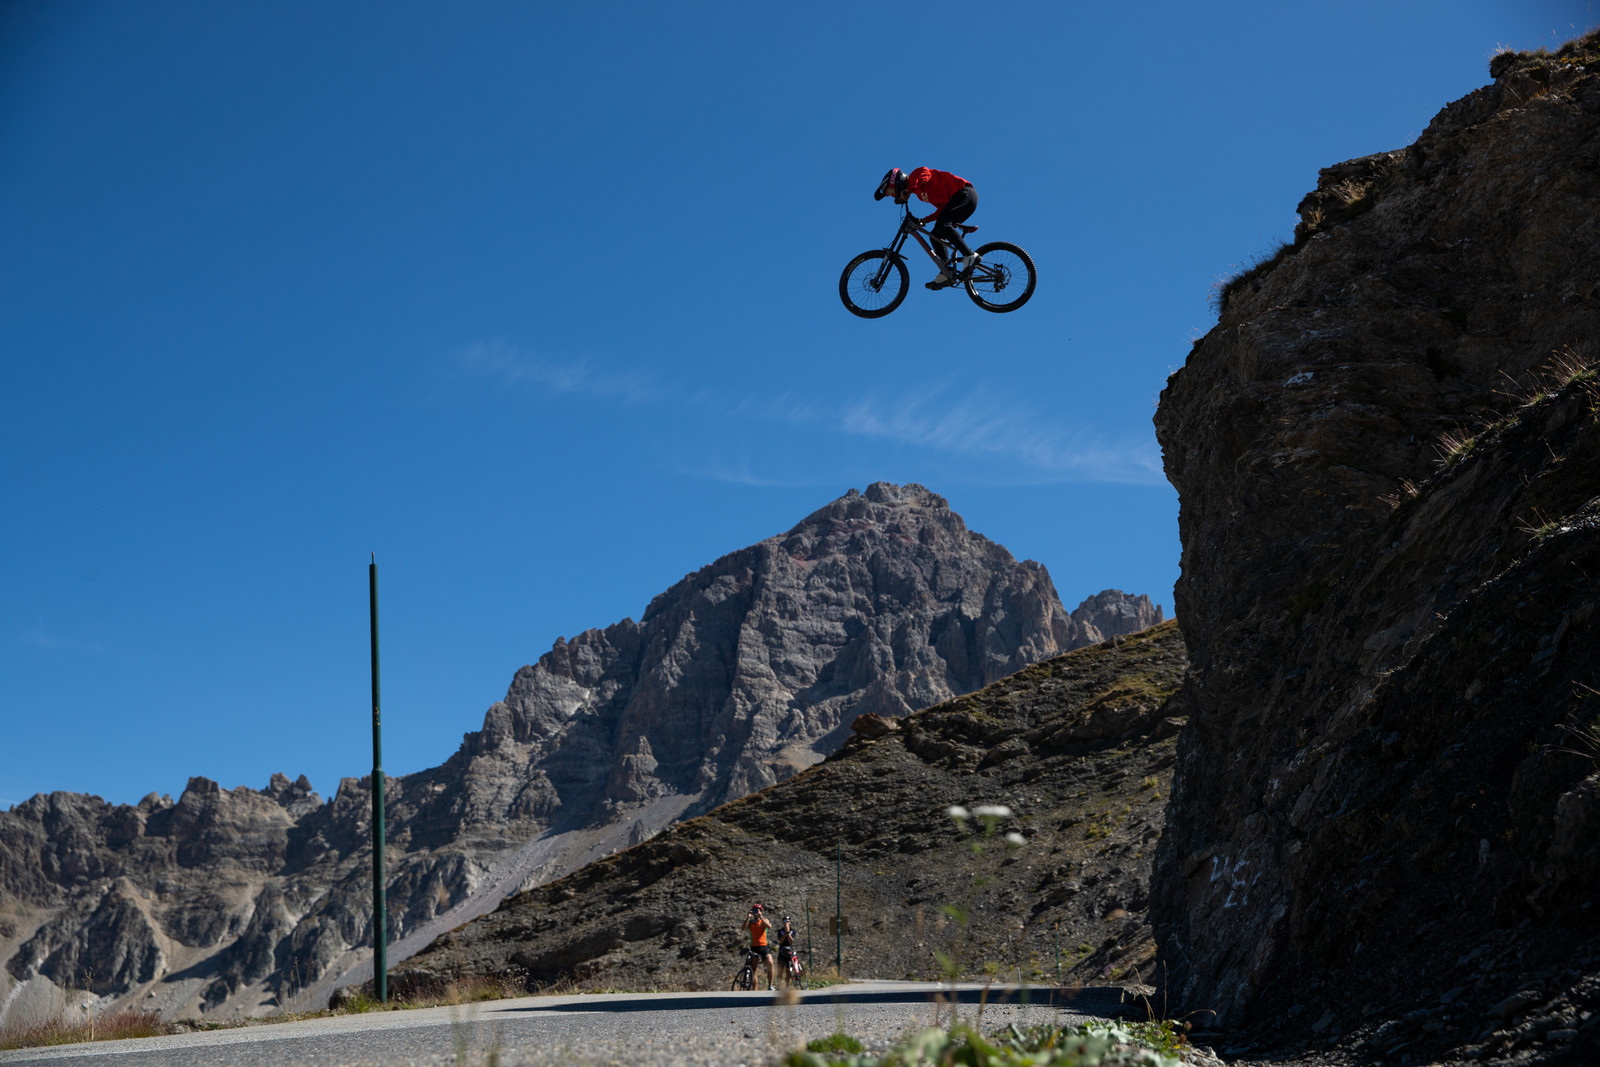 Rowdy Freeride Lines and Big Hucks, Including One Infamous Road Gap